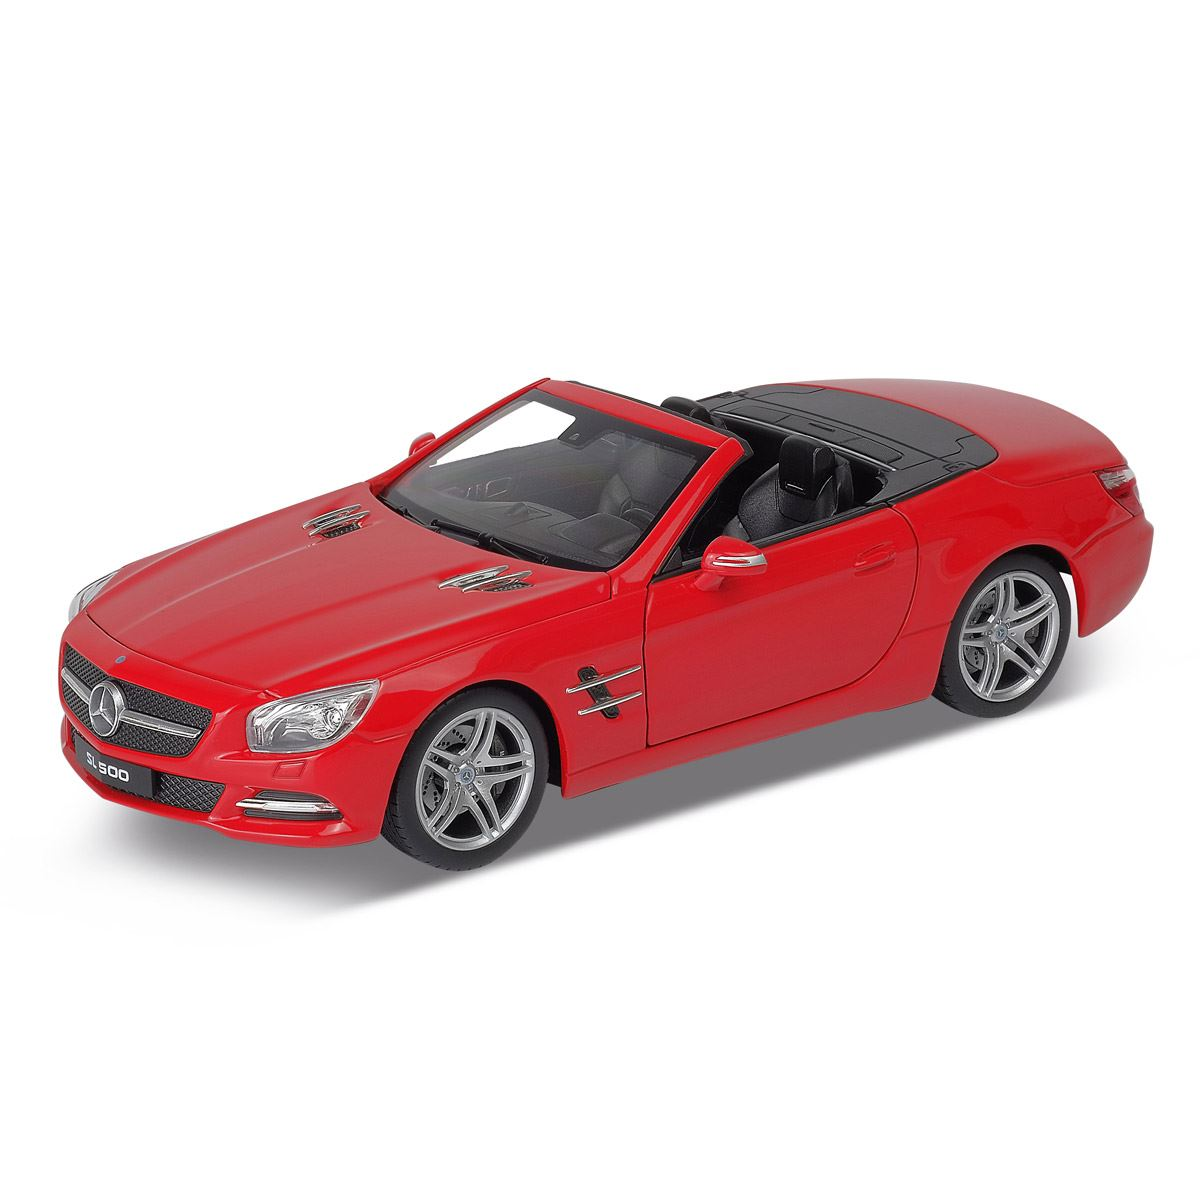 Mercedez -benz sl500 2012, convertible esc. 1:24  - Sanborns